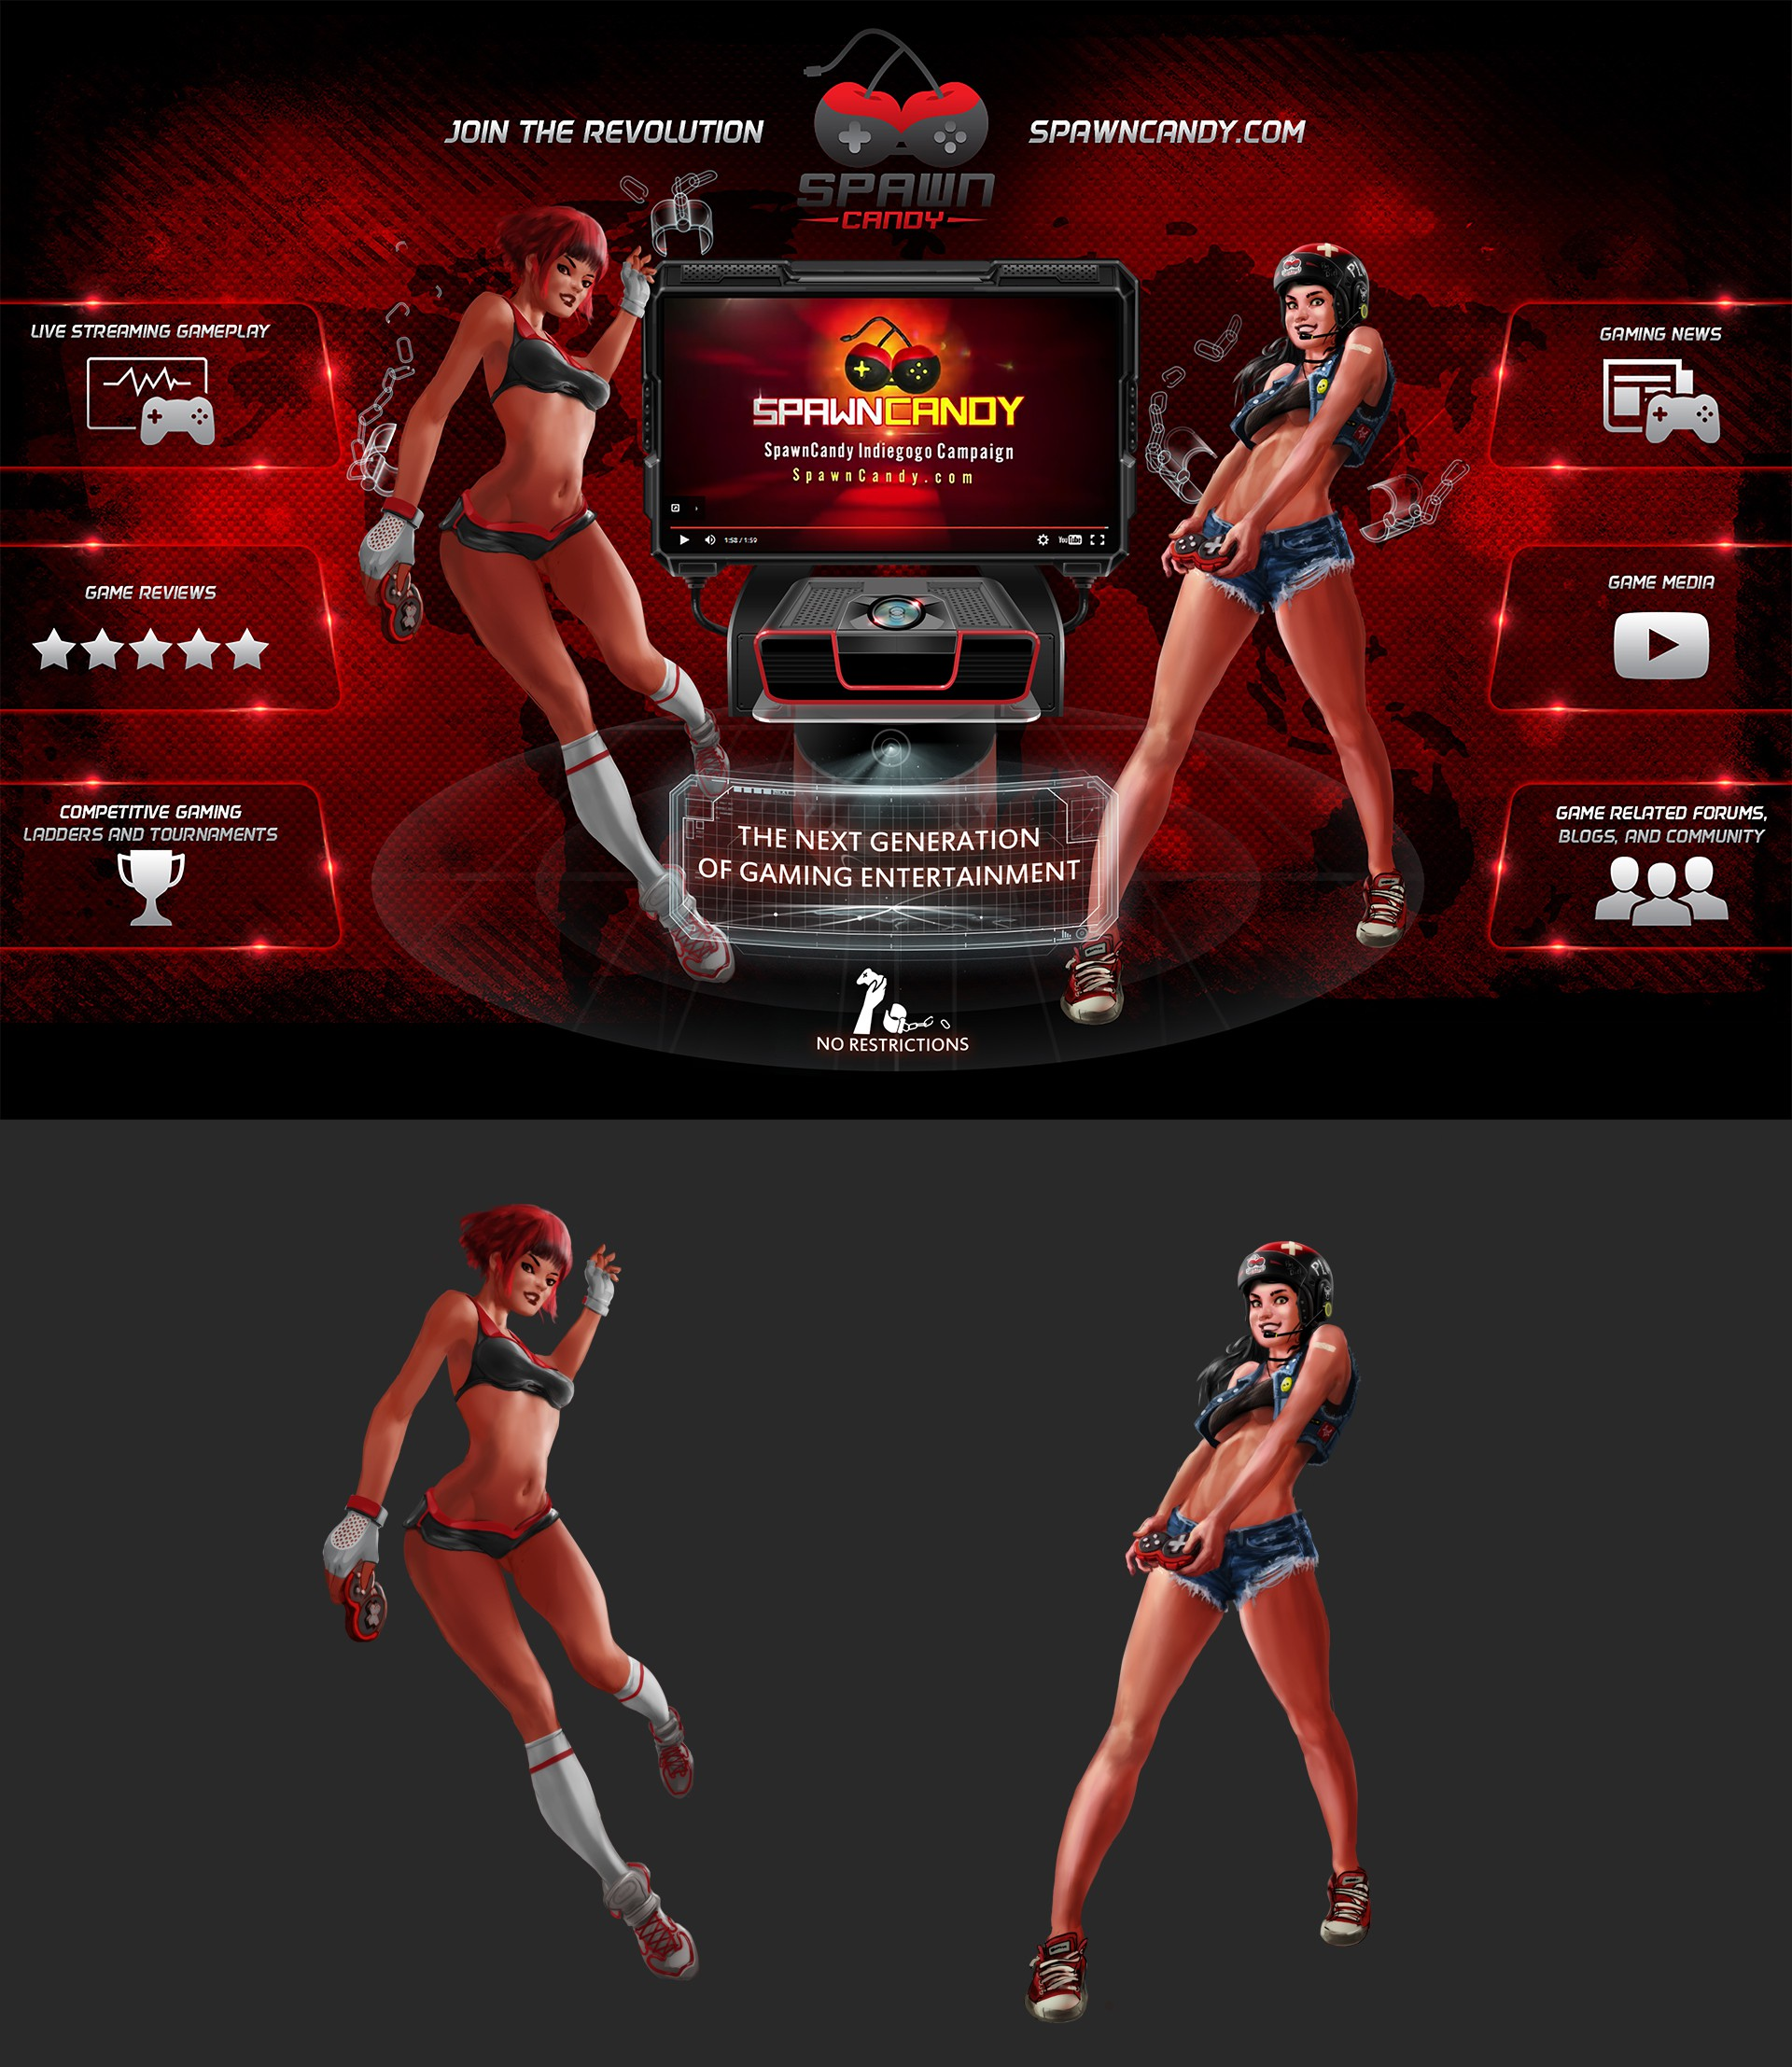 2 SpawnCandy Female Gamer Characters and centerpiece graphic design.